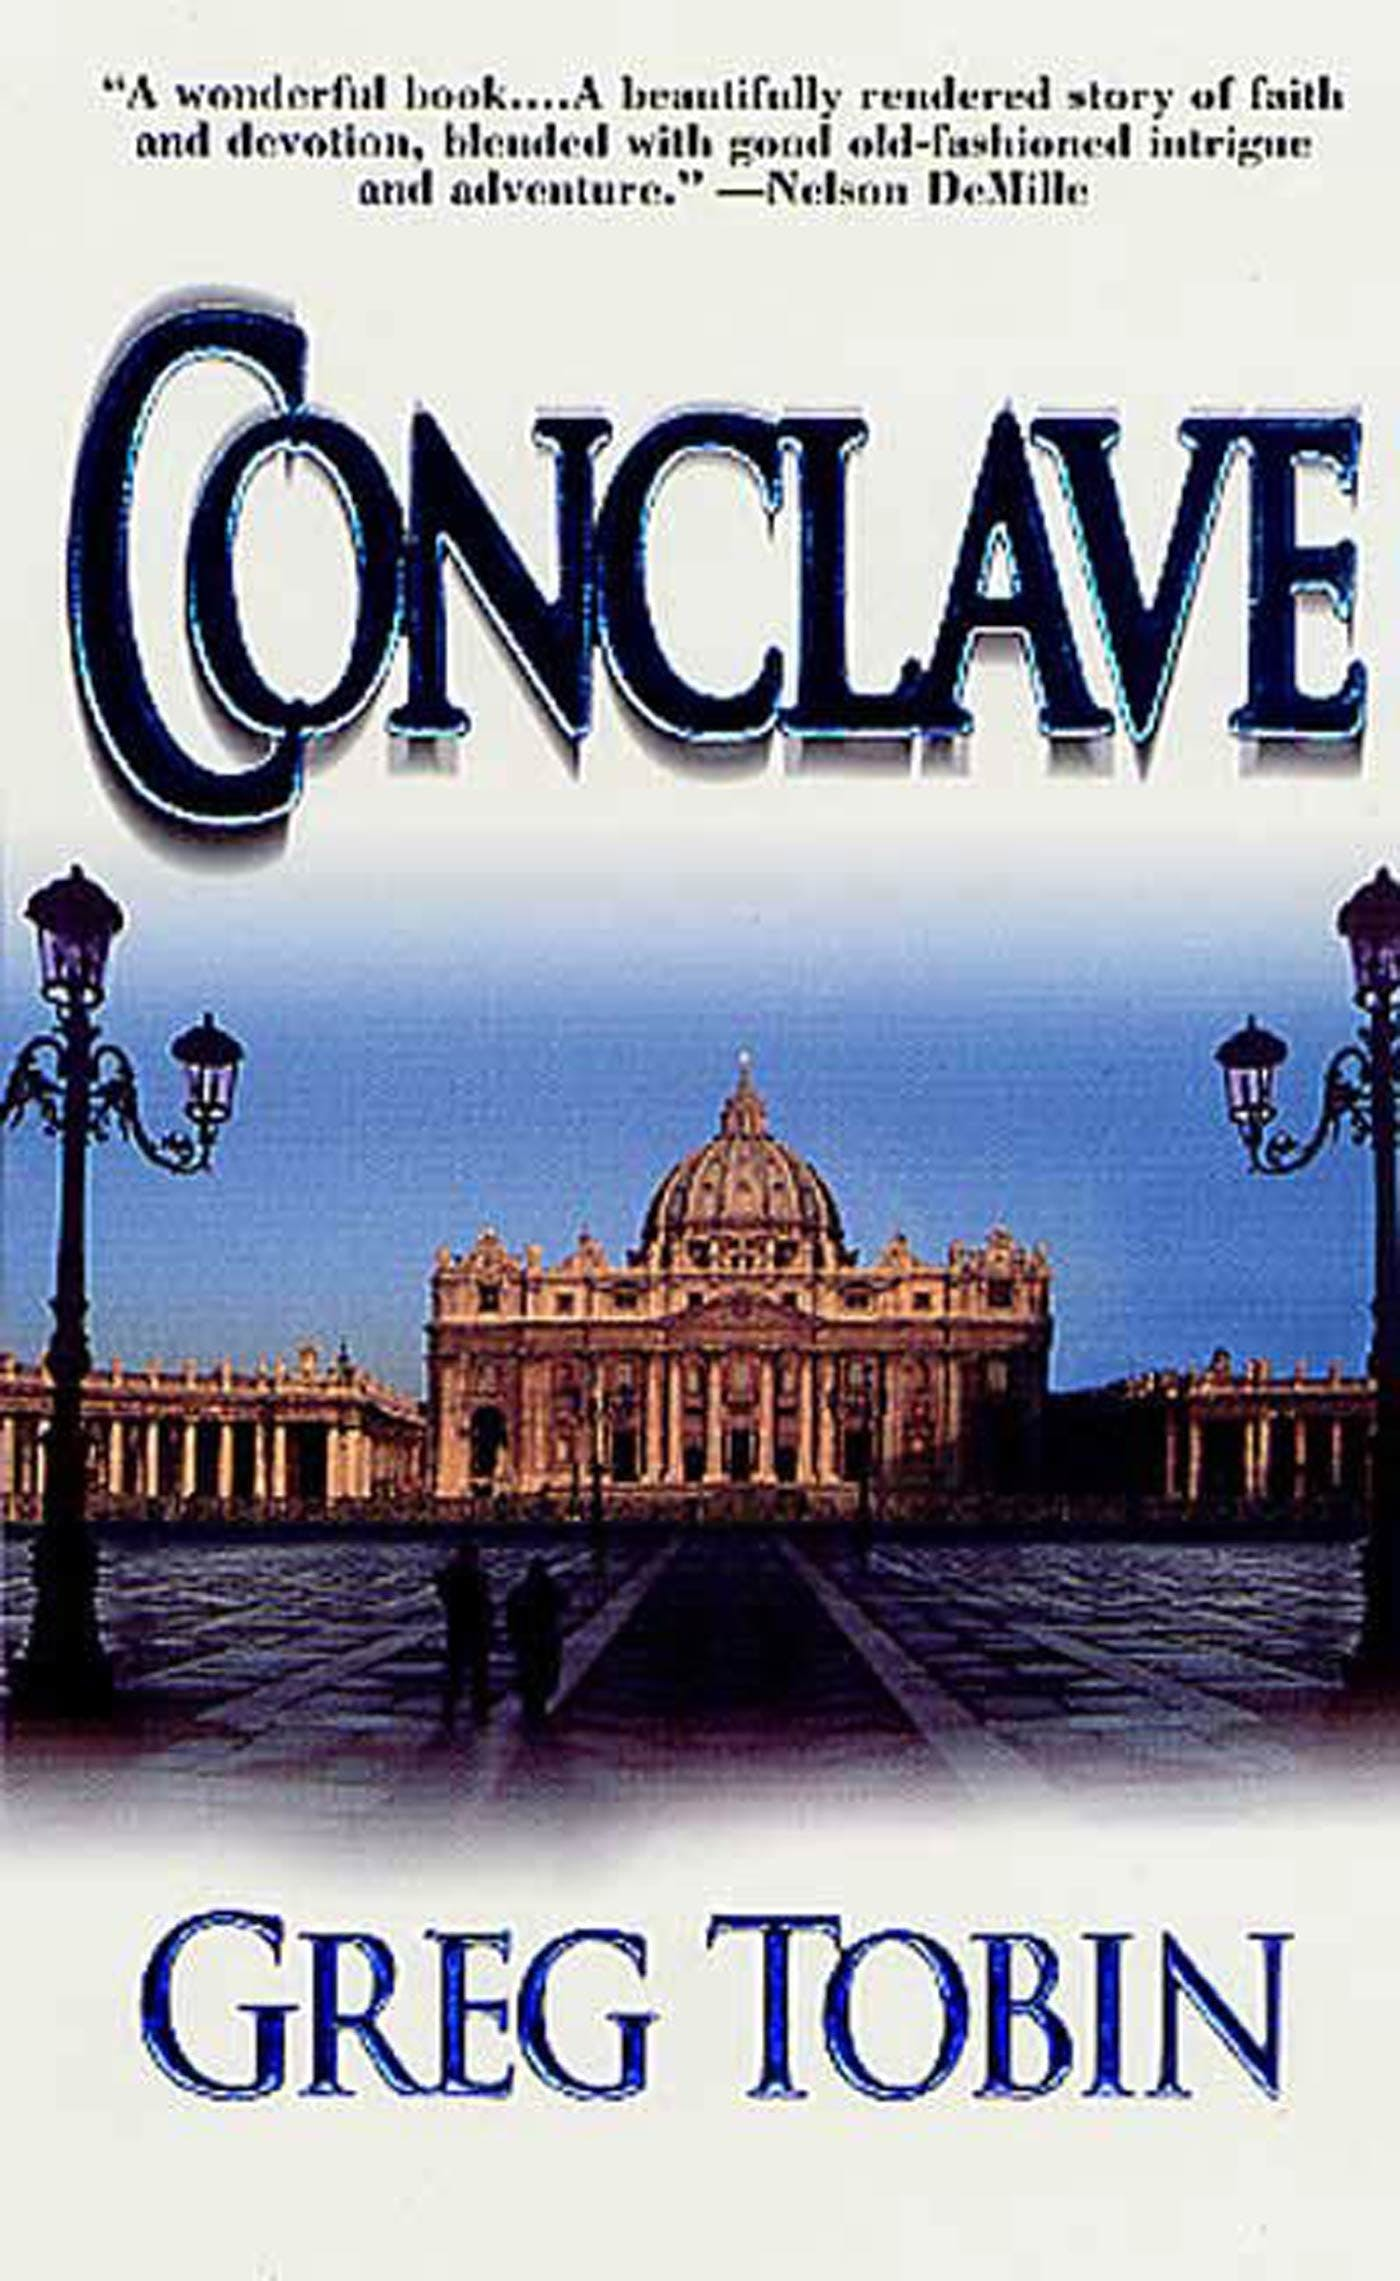 Image of Conclave